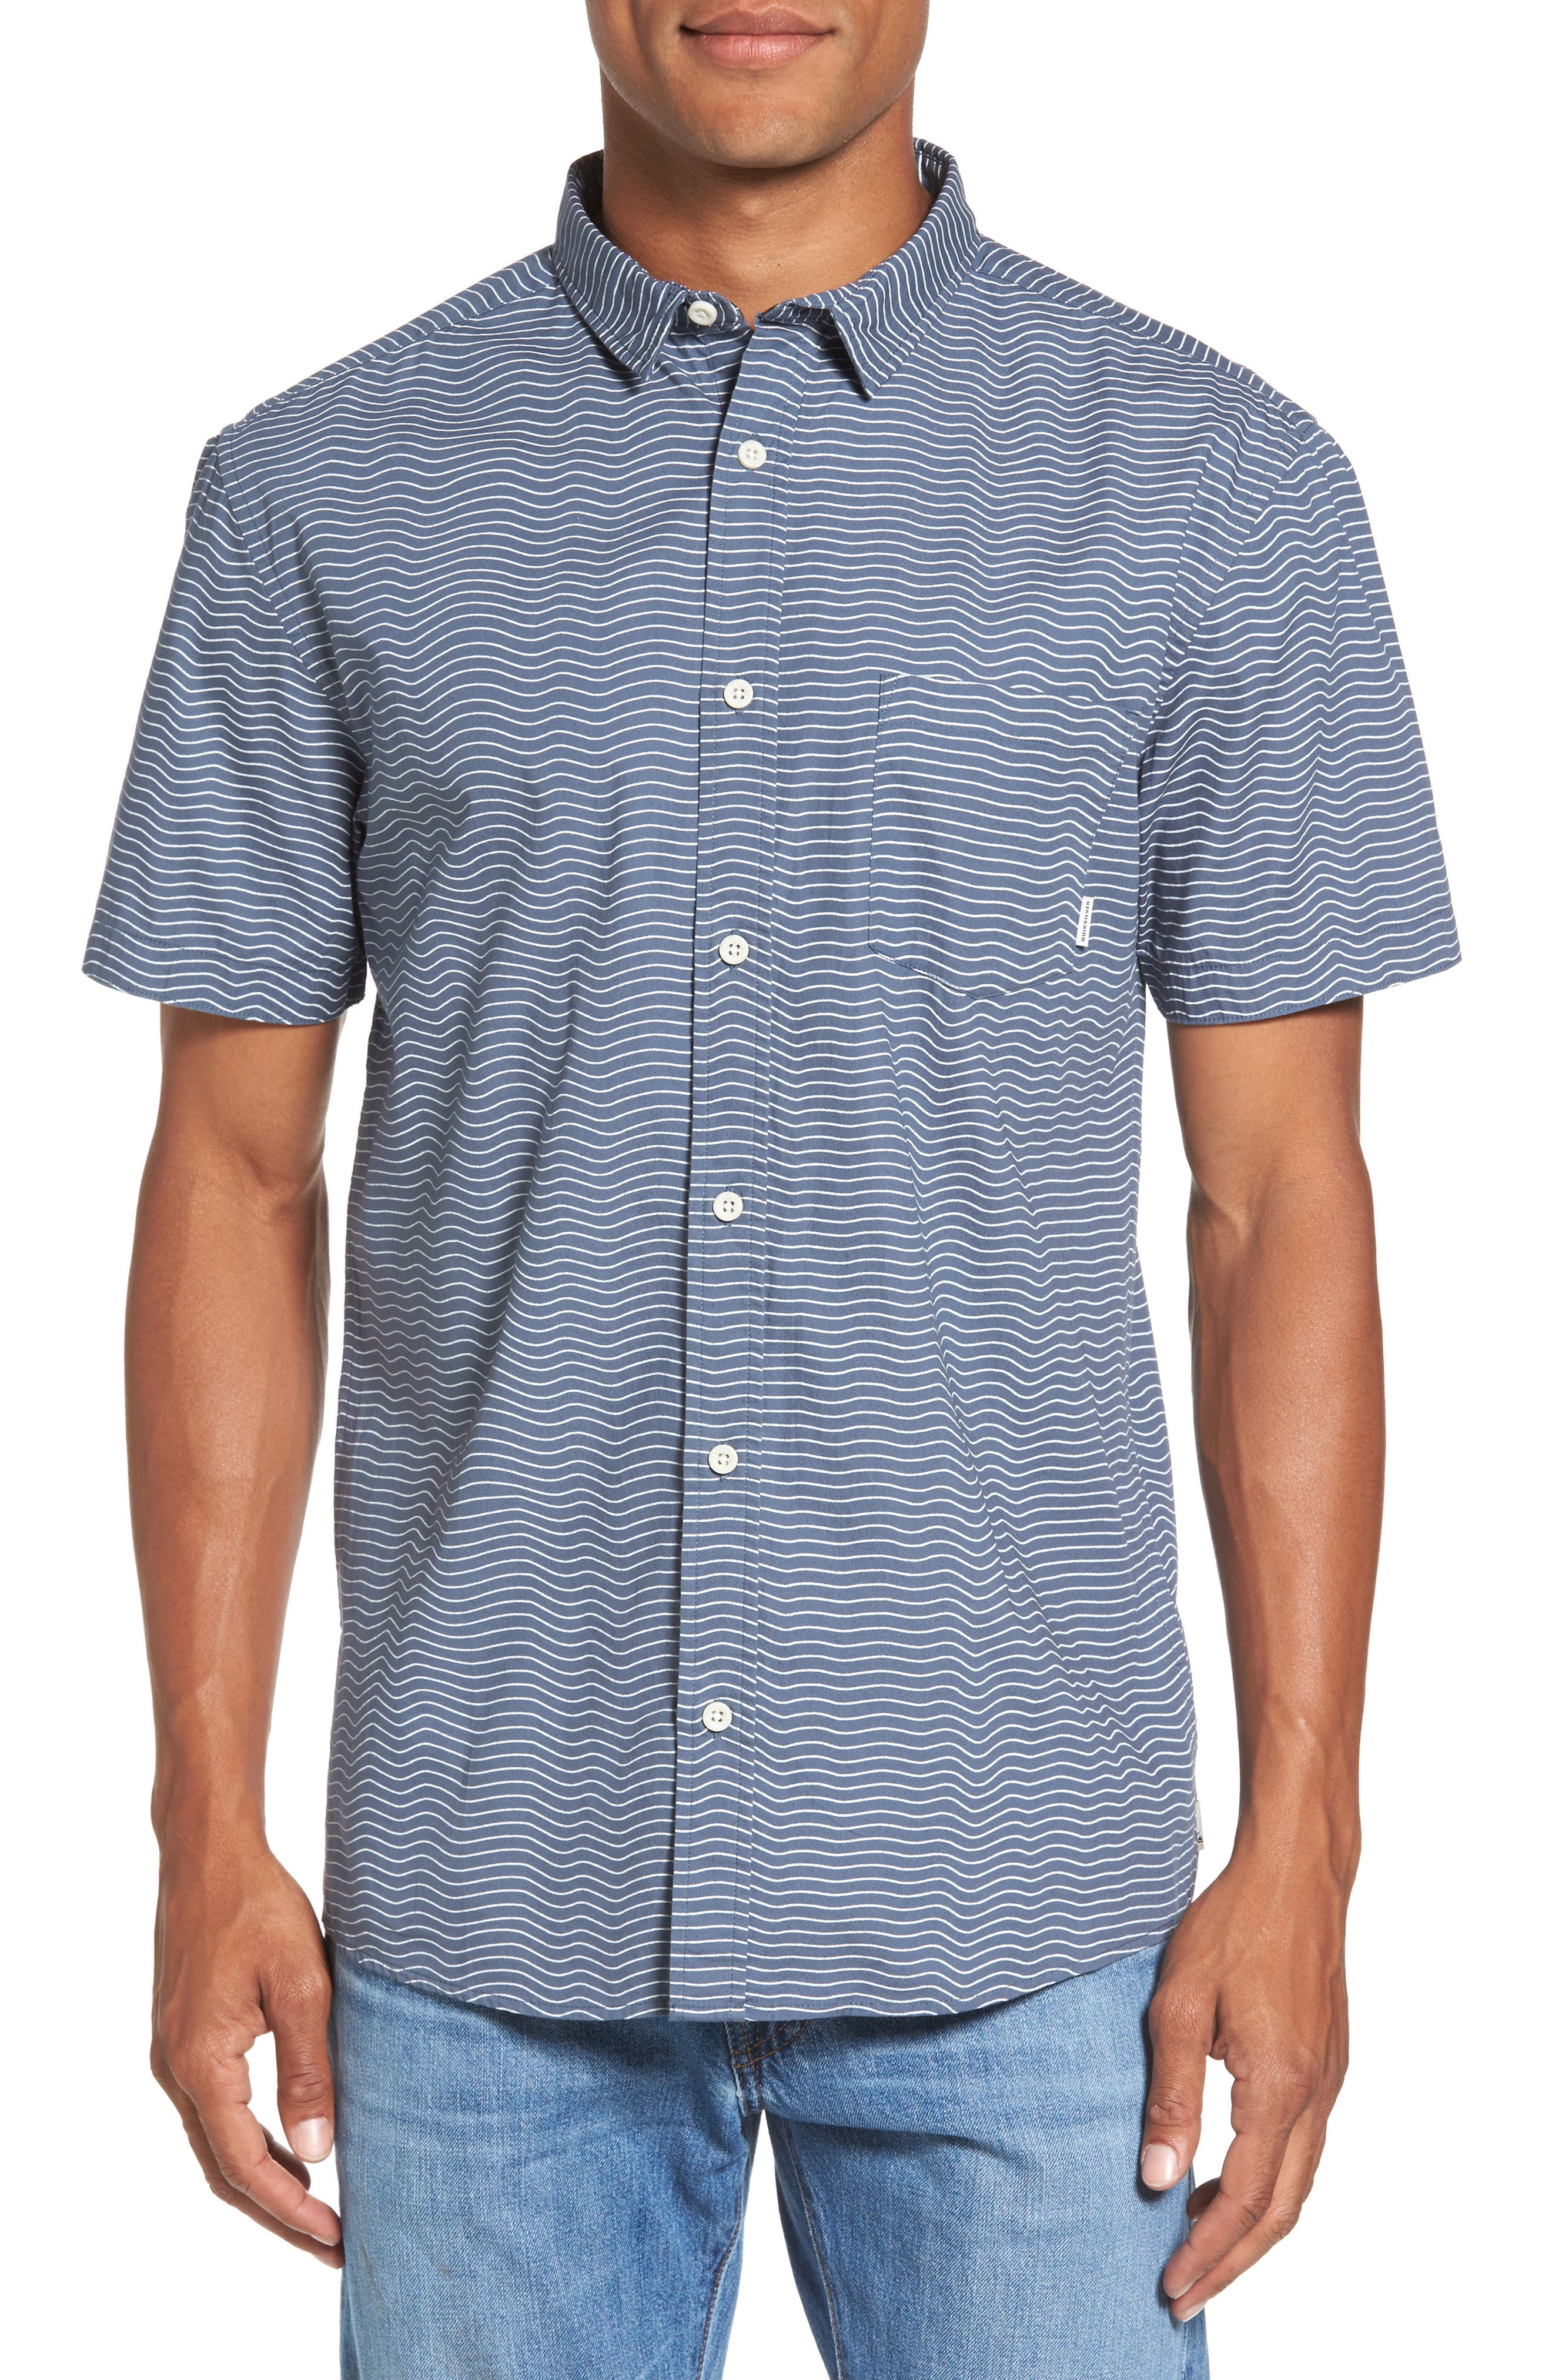 Heat Wave Stripe Shirt,                             Main thumbnail 1, color,                             Blue